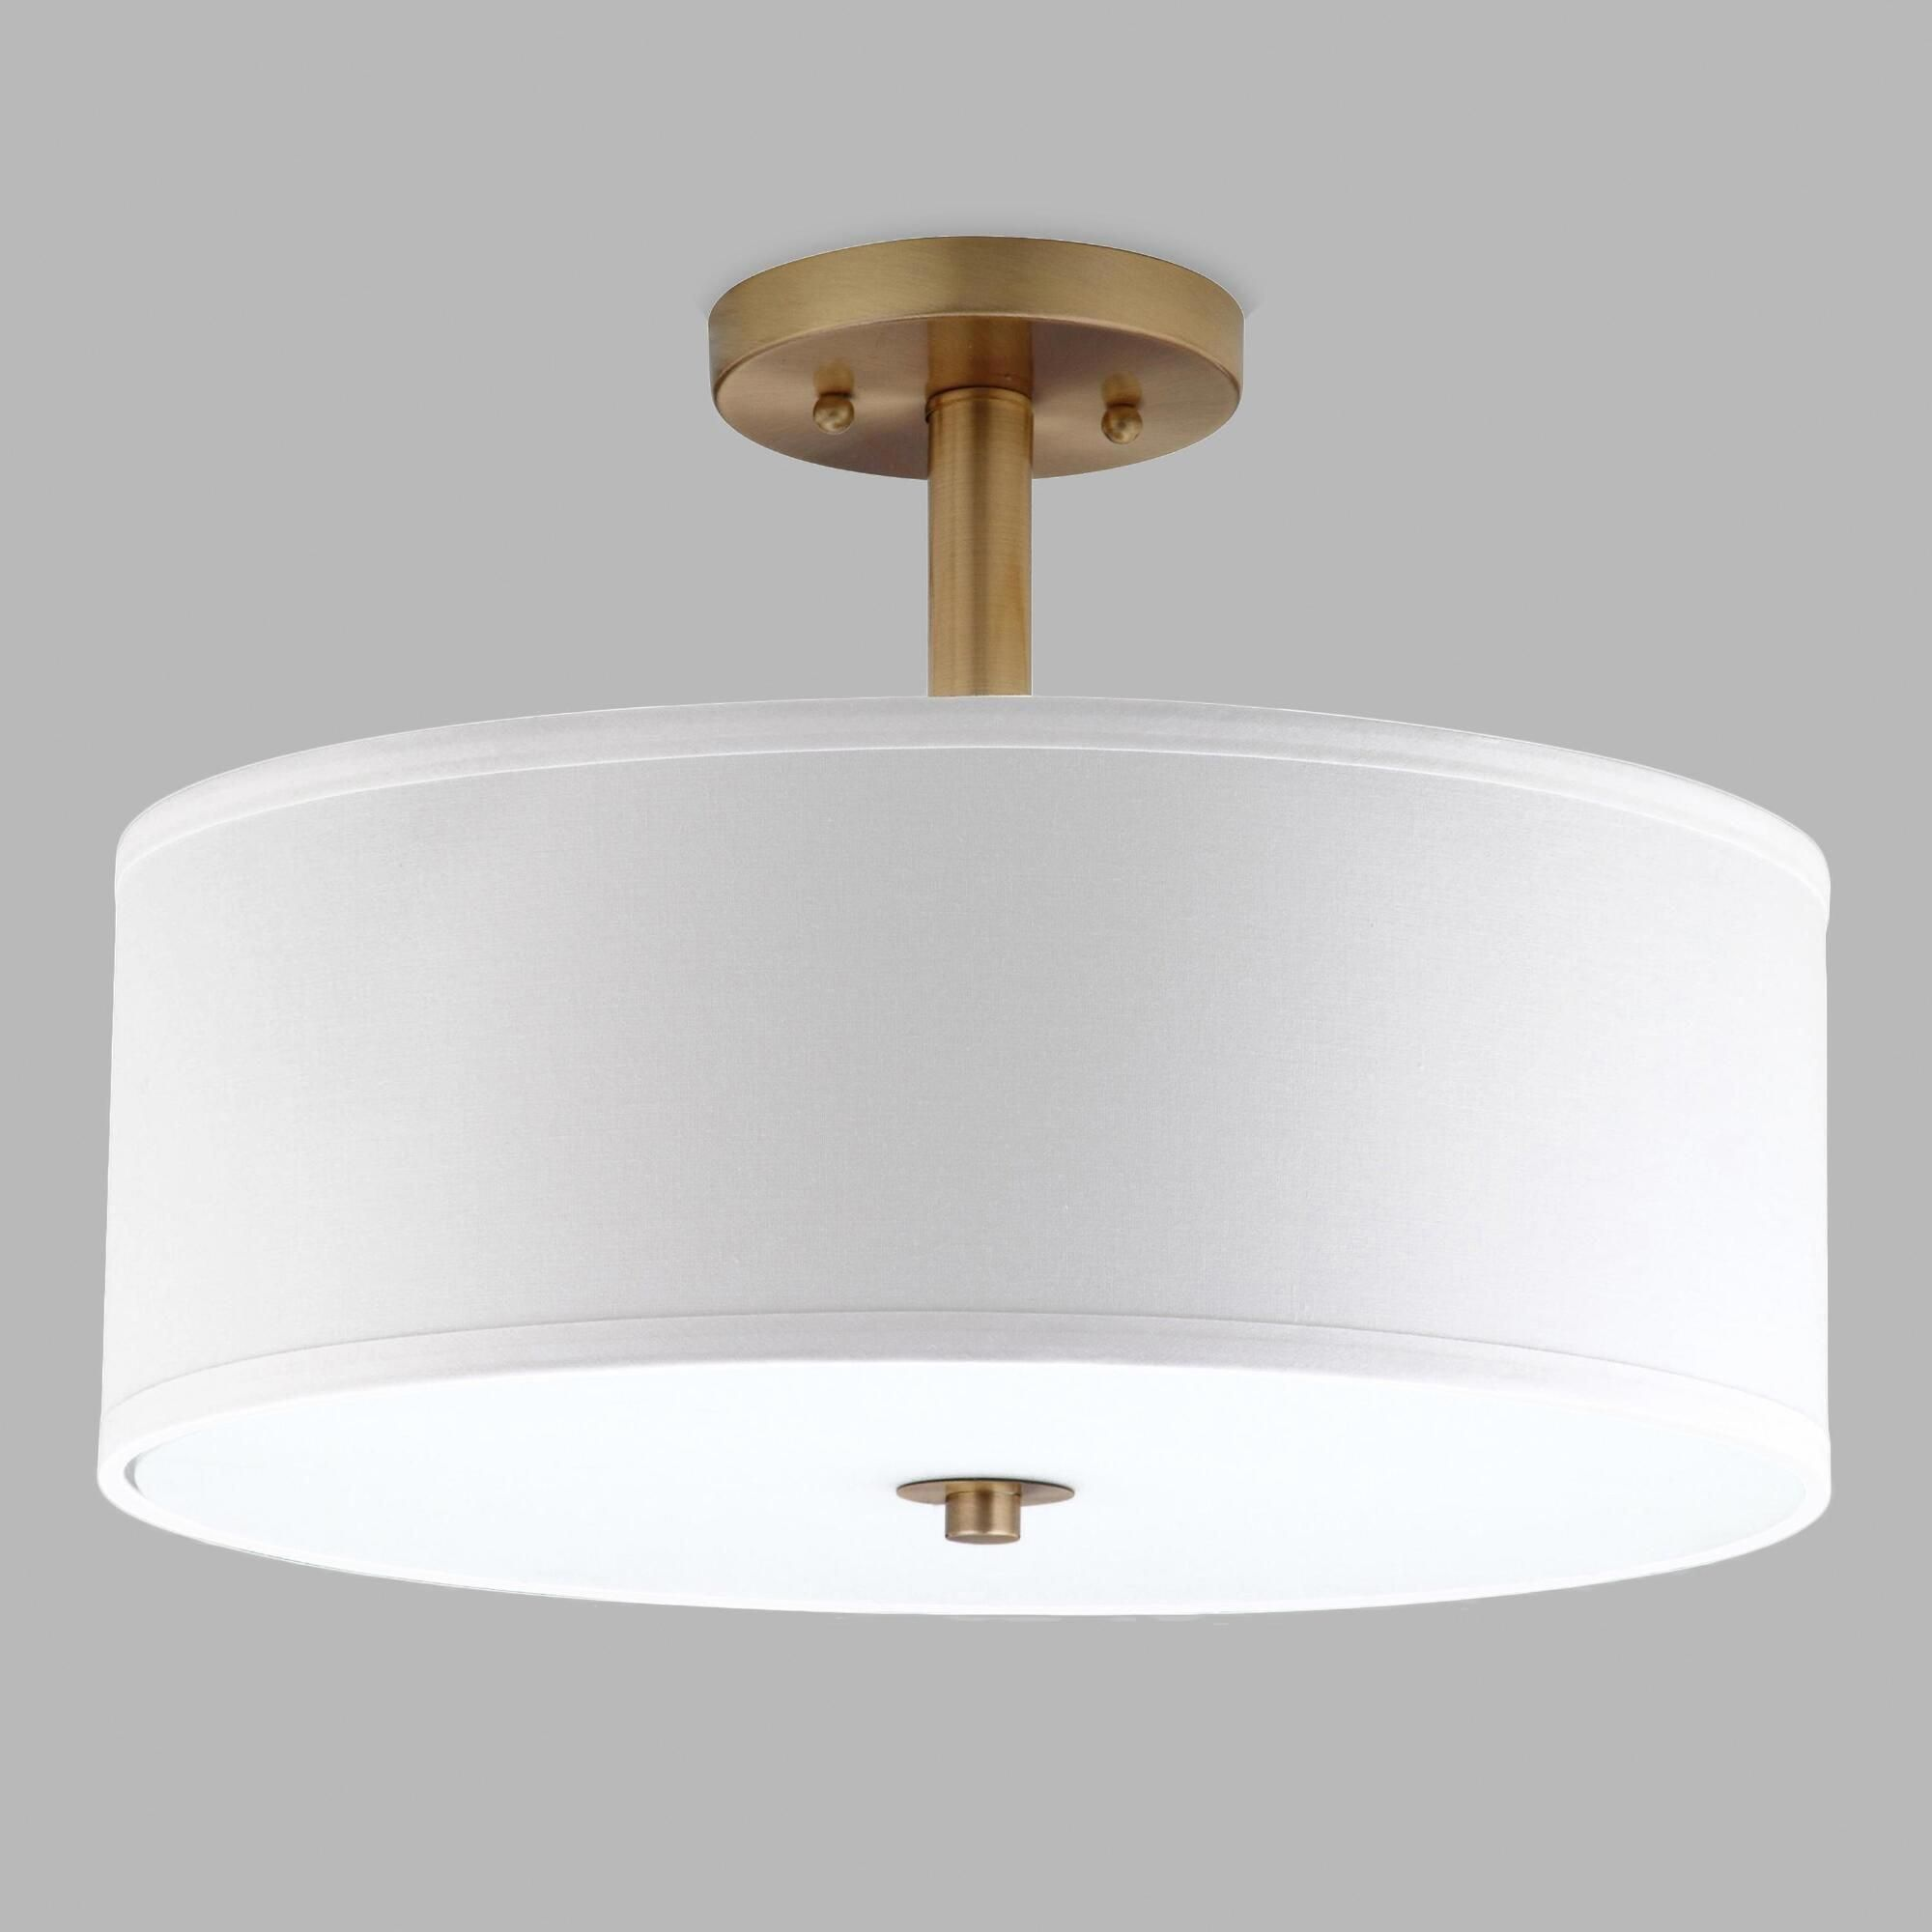 Gold And White Flush Mount Alysian Ceiling Light By World Market Masterbedroom In 2020 Ceiling Lights Bedroom Ceiling Light Flush Mount Ceiling Lights